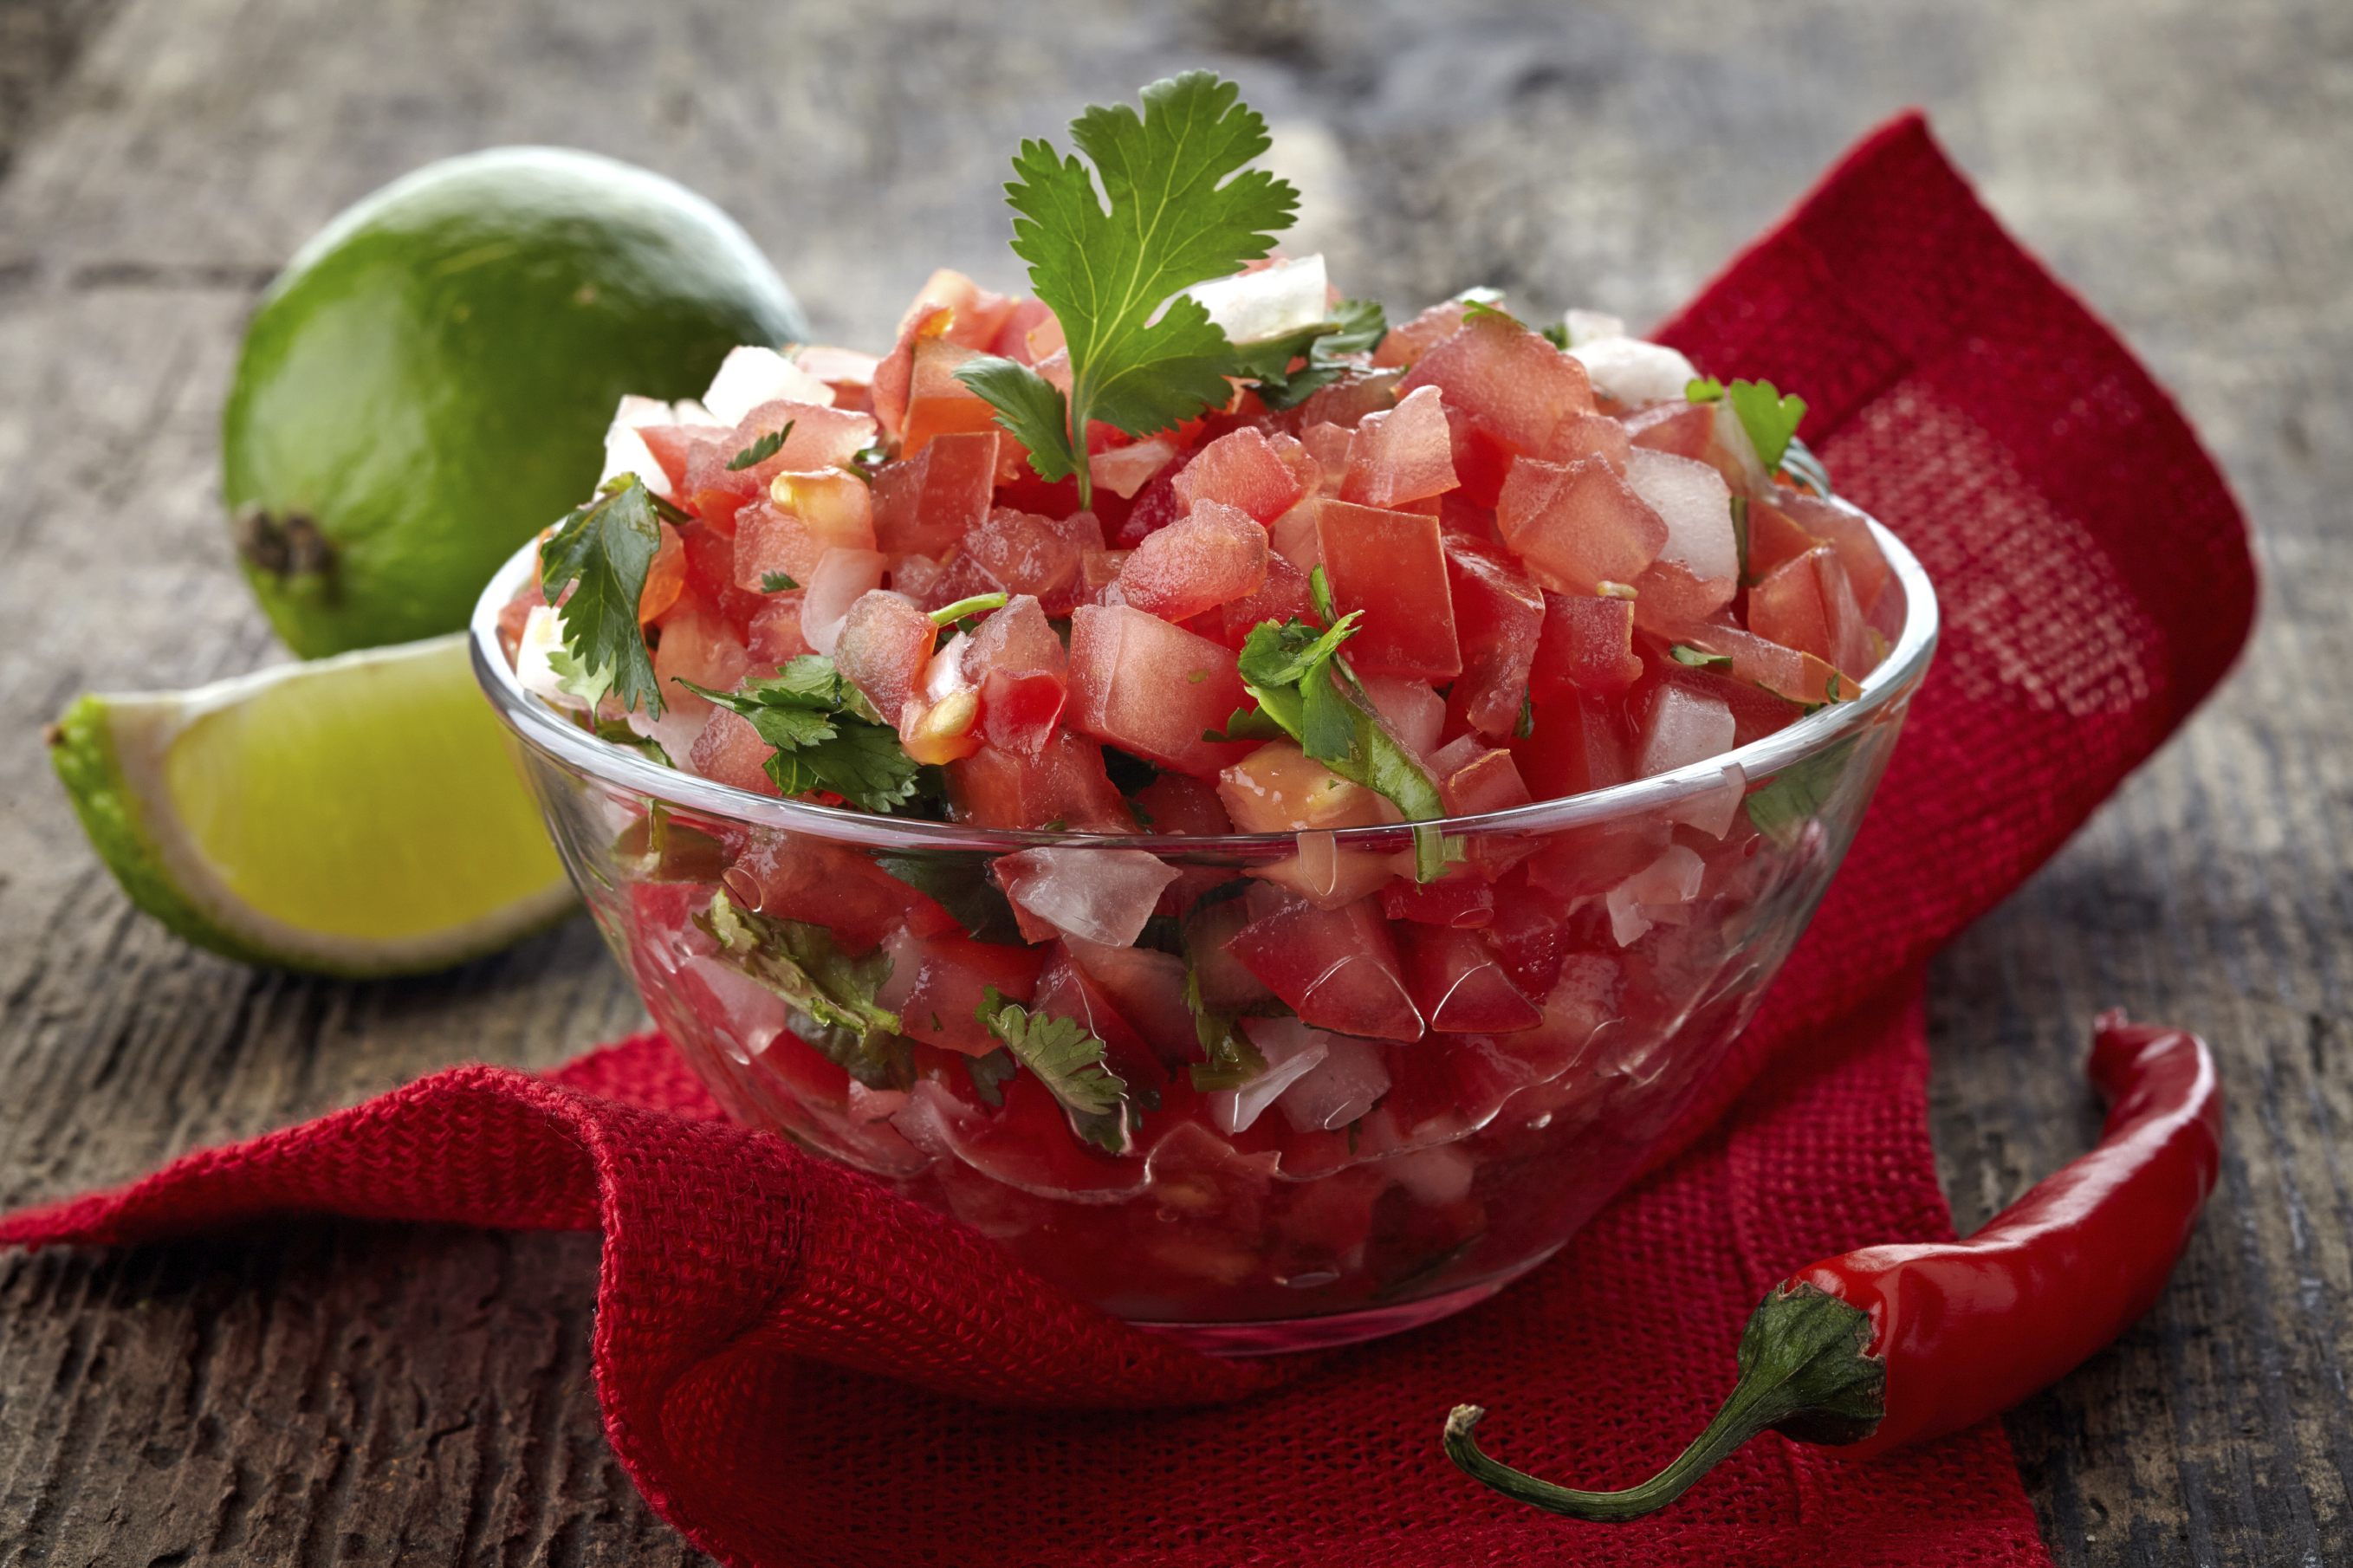 Chunky salsa in a bowl with limes on the side